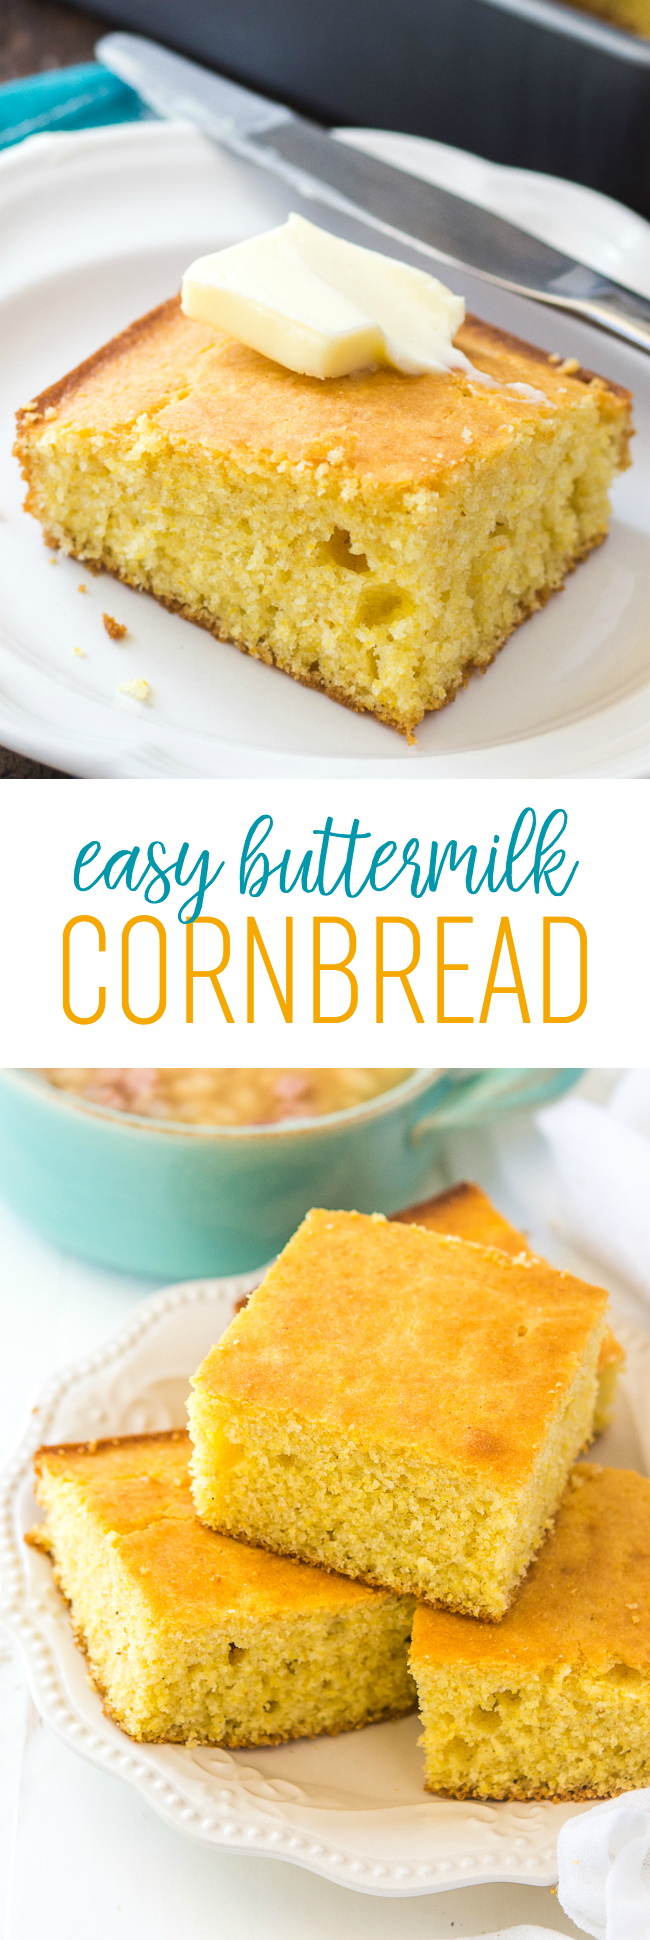 21 corn bread recipes